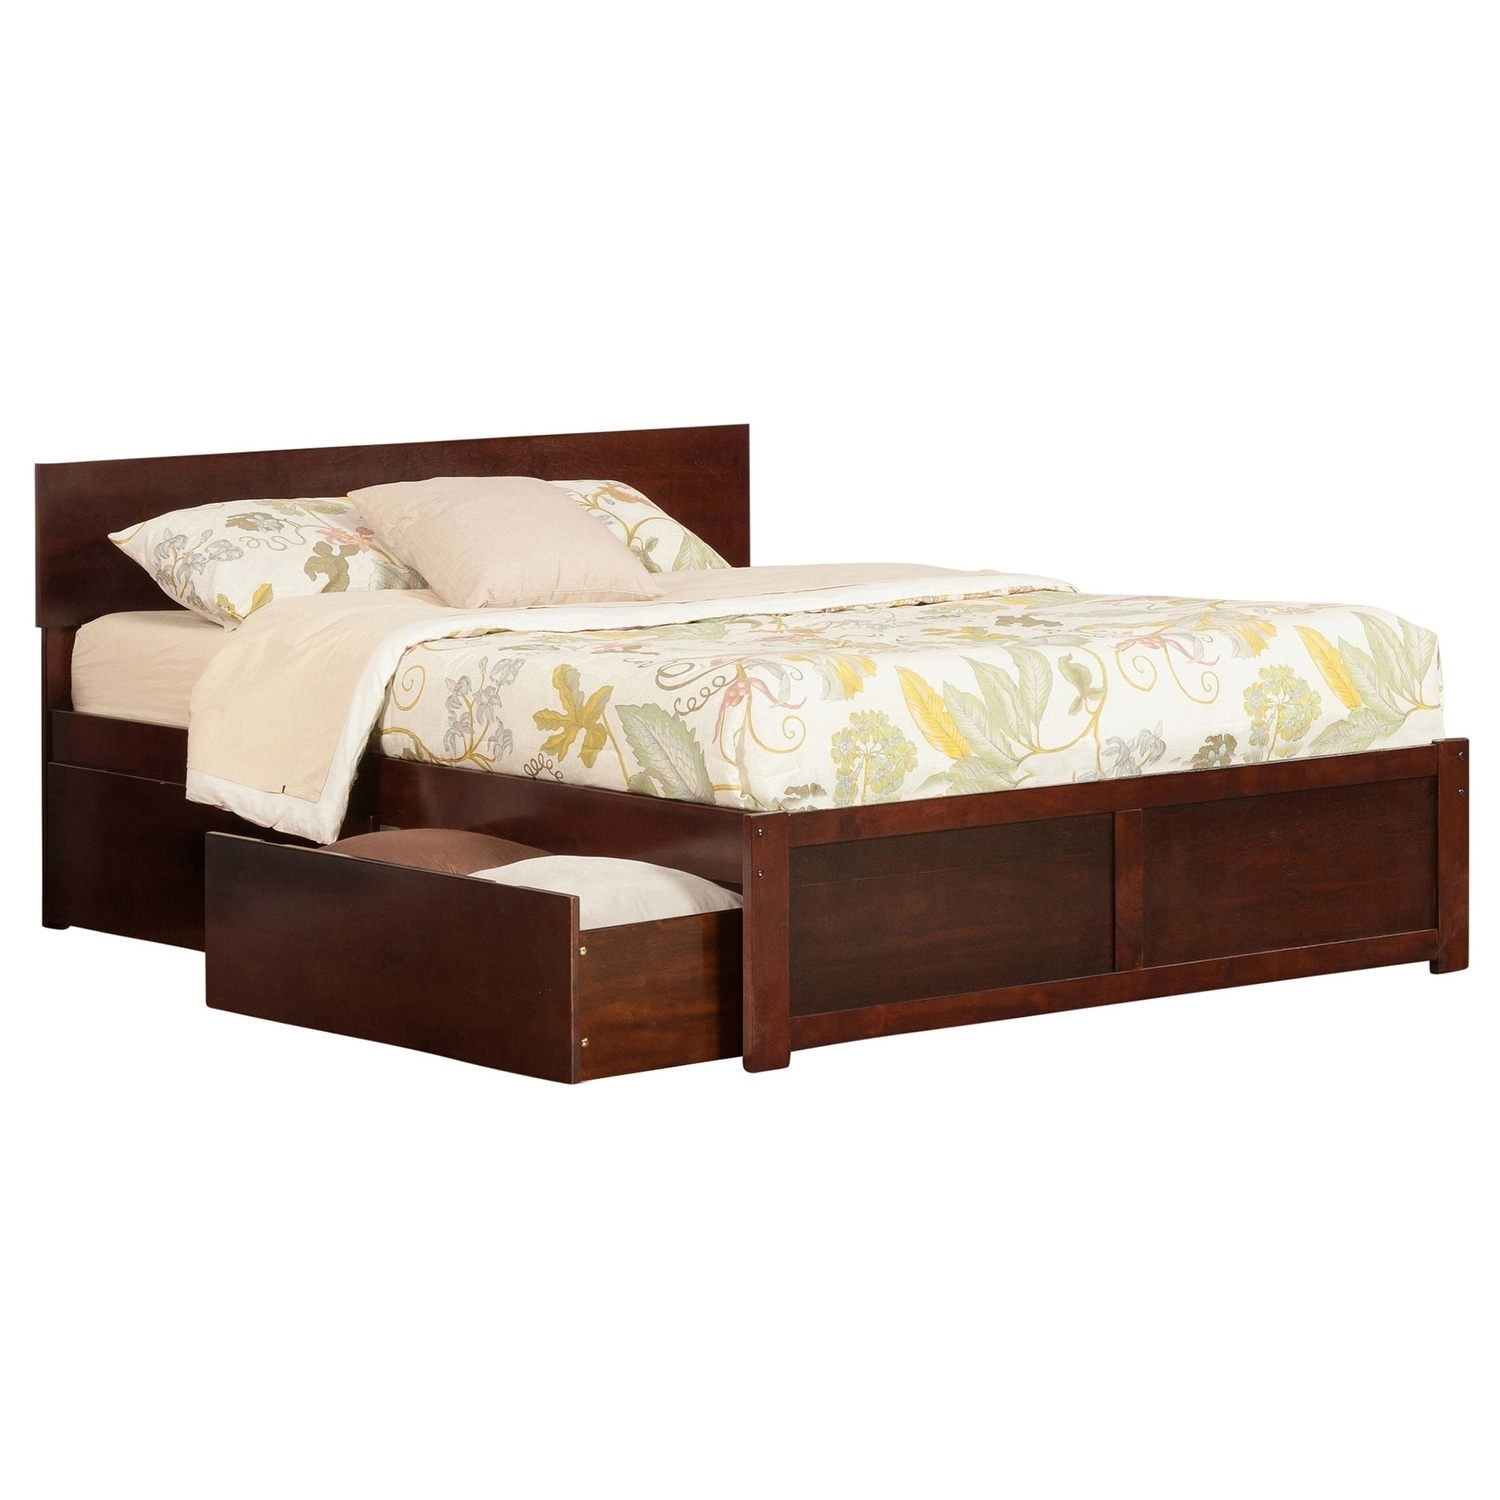 Shop Orlando Walnut Colored Queen Flat Panel Foot Board With 2 Urban Bed Drawers Overstock 12777711